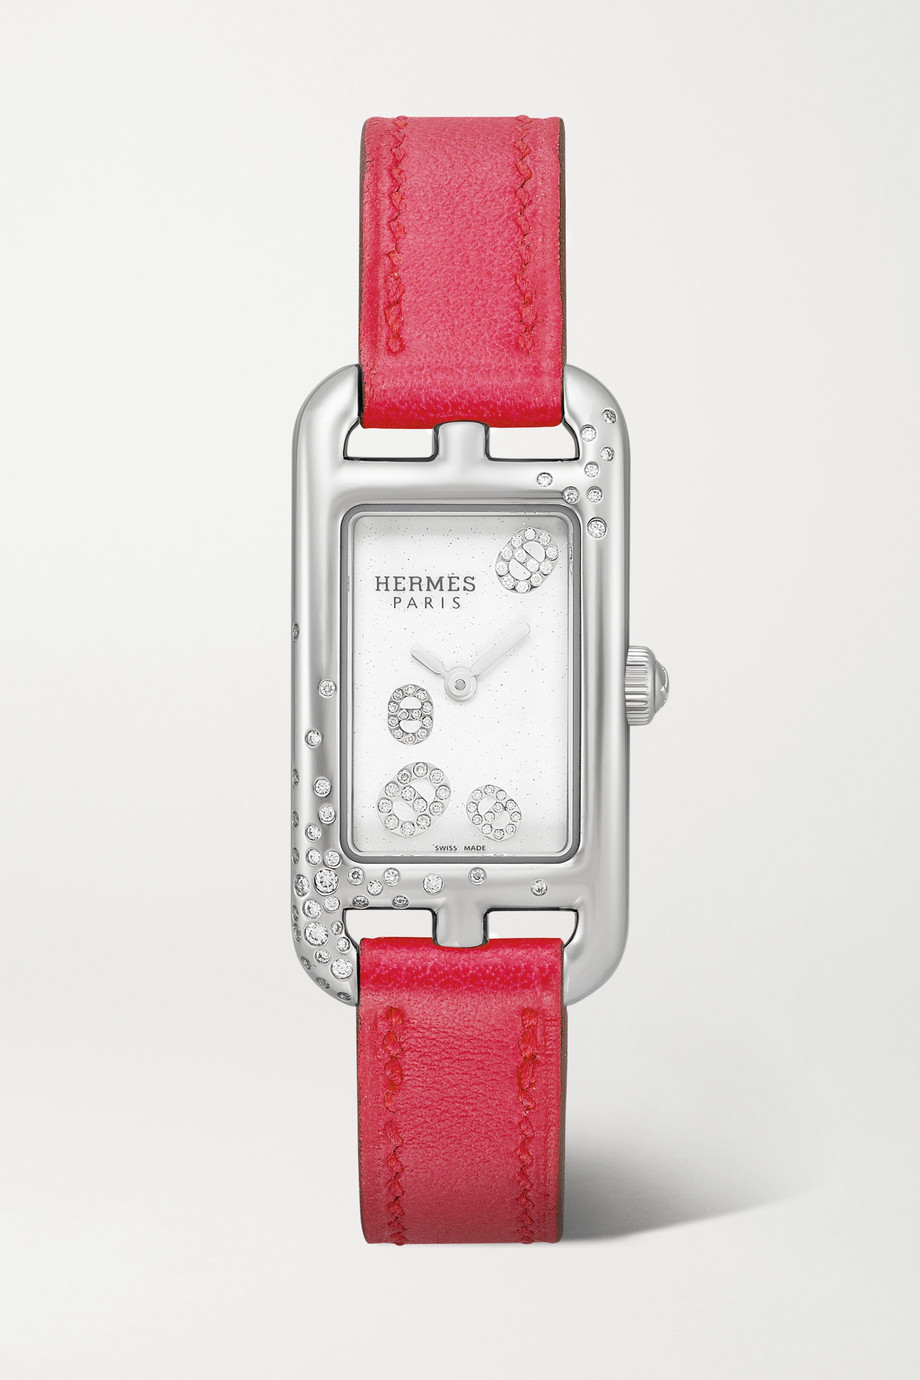 Hermès Timepieces Nantucket 17mm very small stainless steel, leather and diamond watch